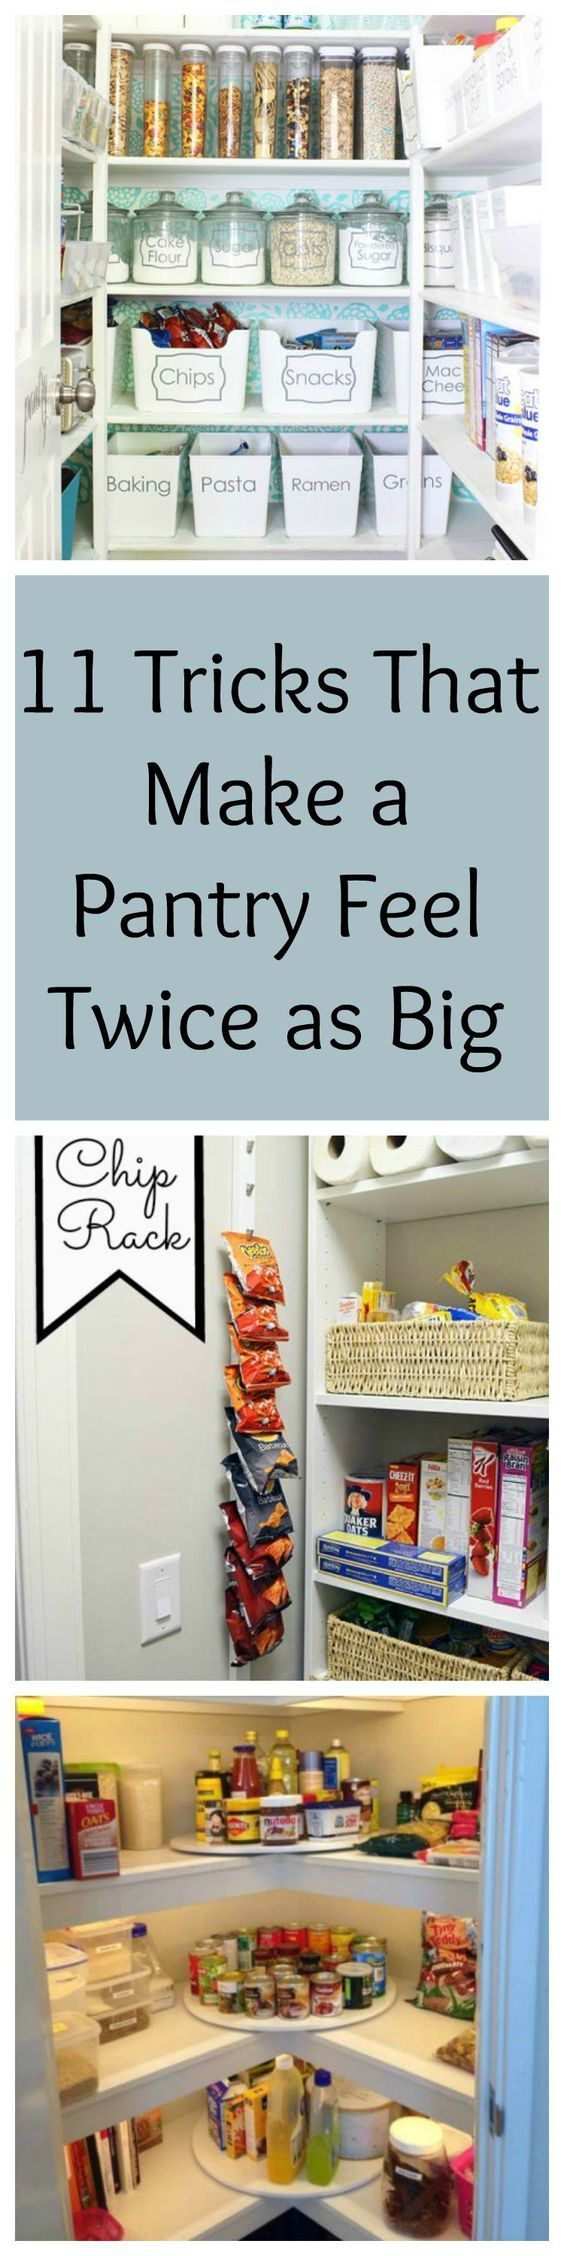 Never lose your favorite spice blend behind your boxes of cereal again thanks to these pantry organization tips and tricks. #diyorganizingideas